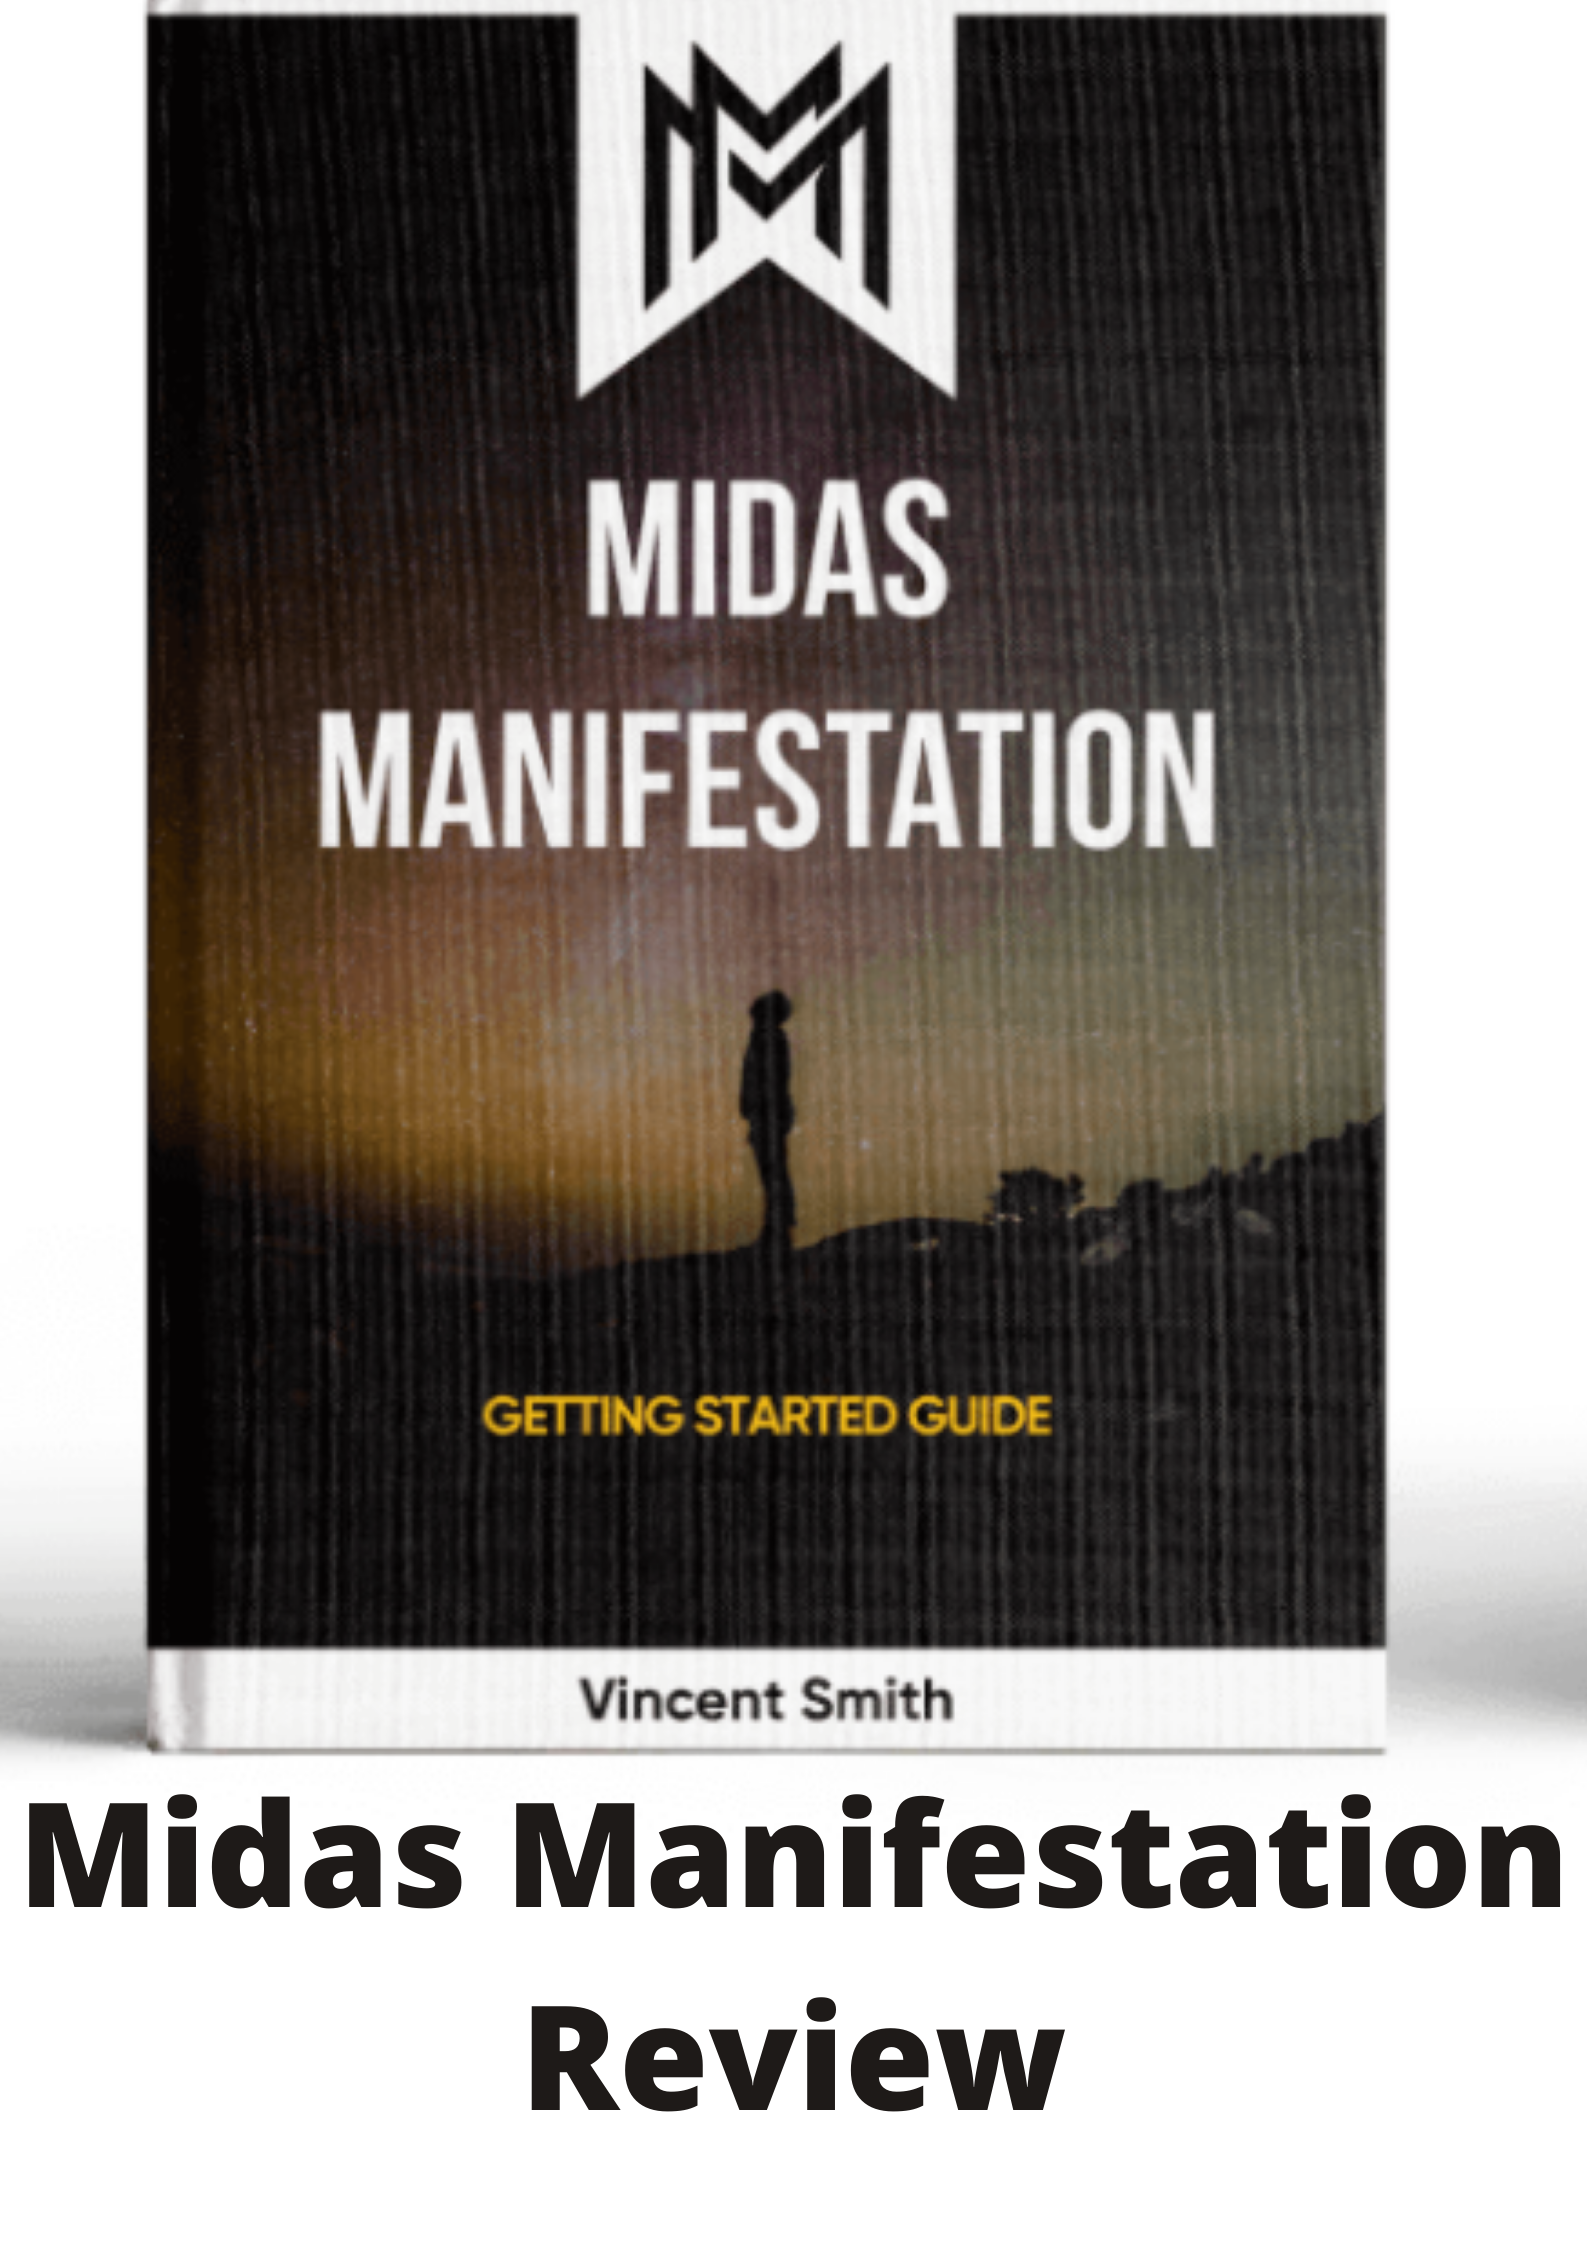 Midas Manifestation Reviews-Is this legit?